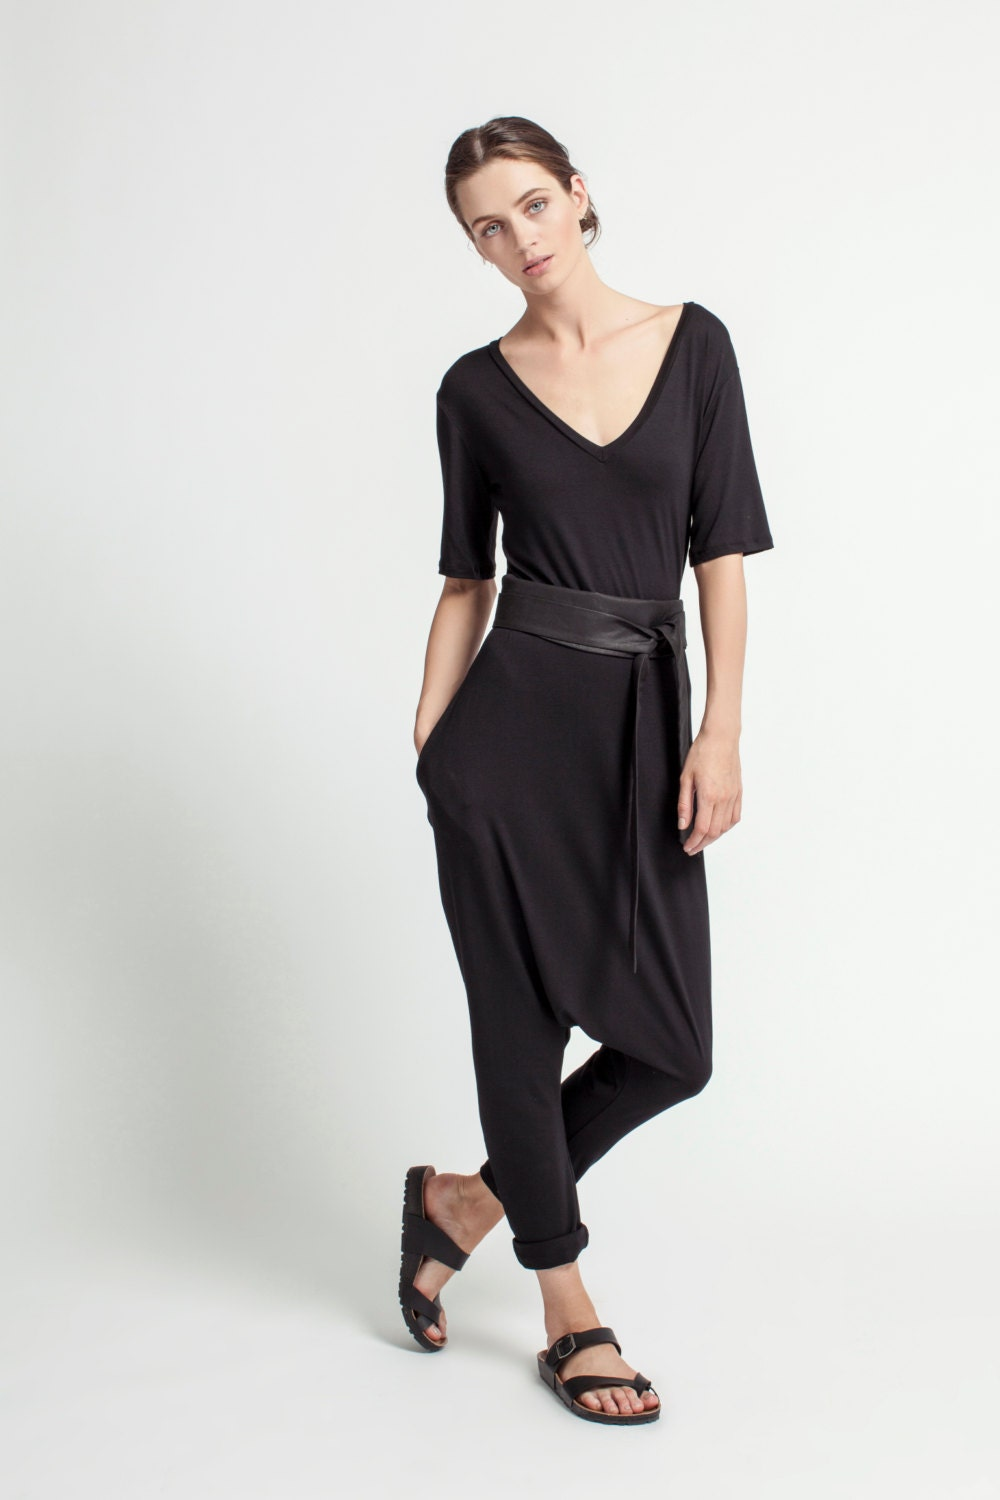 Wide Leg Long Romper Pants, Racer Back Jumpsuit, Womens Cotton Plus Utyful Women Off Shoulder Ruffled High Waist Jumpsuit Long Wide Leg Pants Romper. by Utyful. $ - $ $ 19 $ 26 99 Prime. FREE Shipping on eligible orders. Some sizes/colors are Prime eligible. out of .